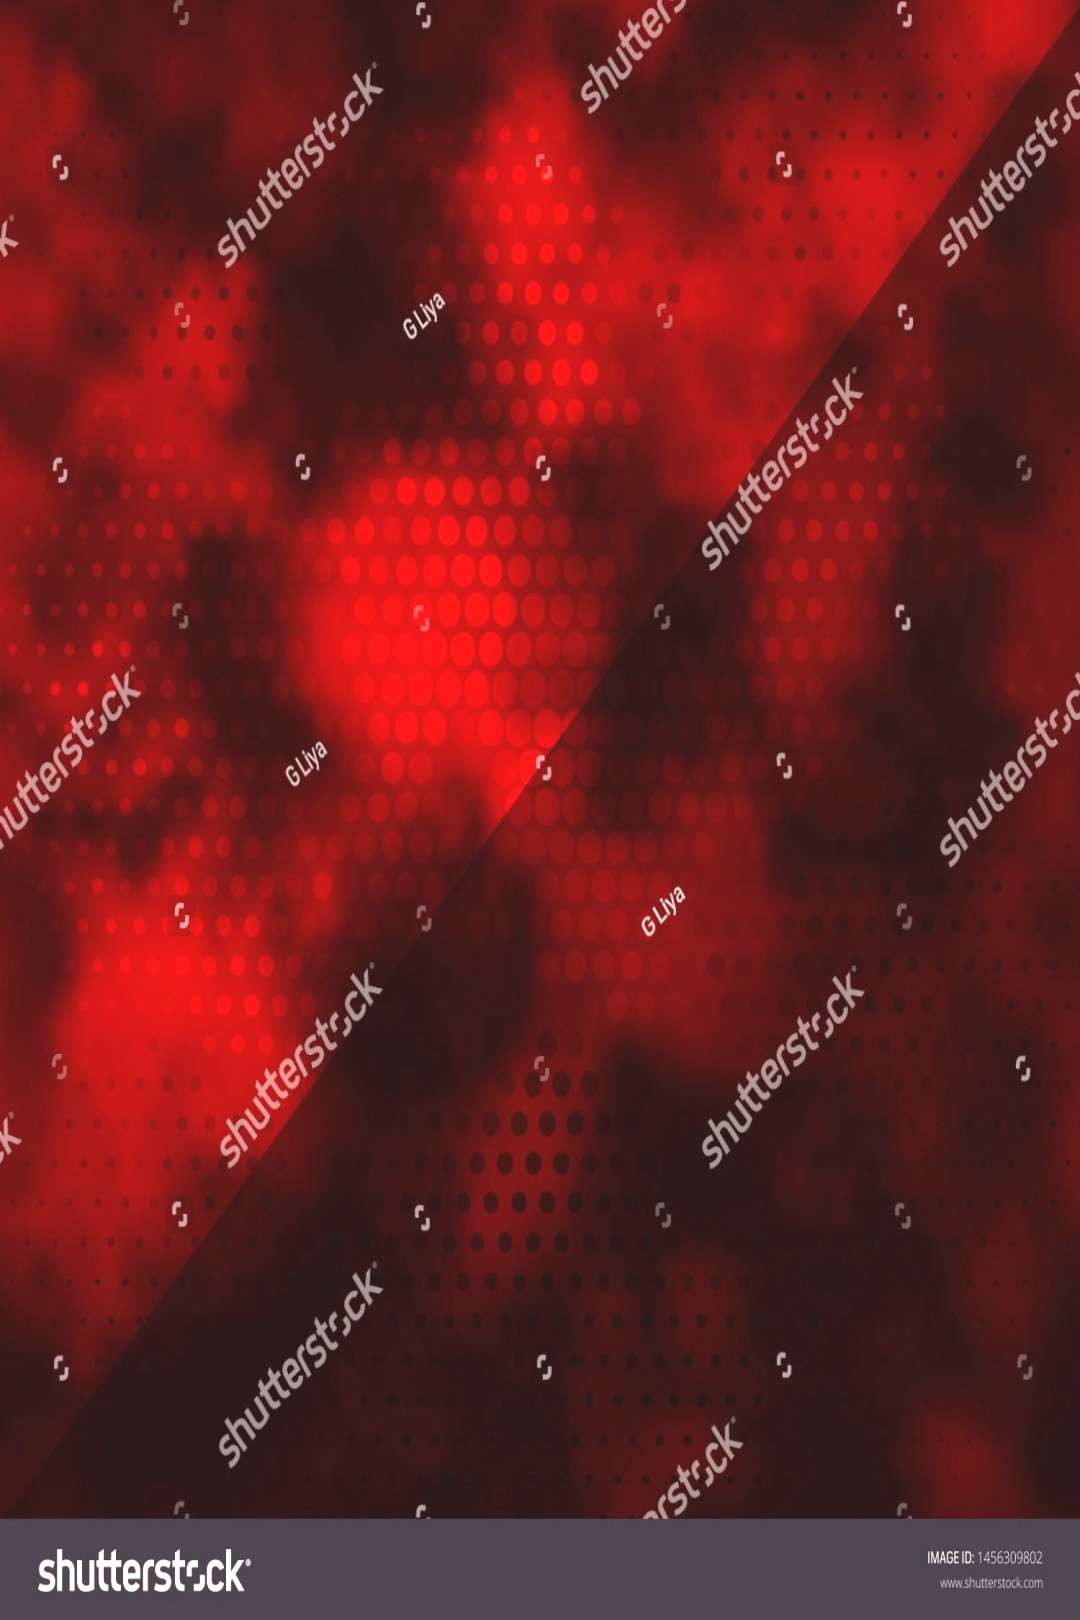 Dark Red vector pattern with circles. Abstract colorful disks on simple gradient background. Patter